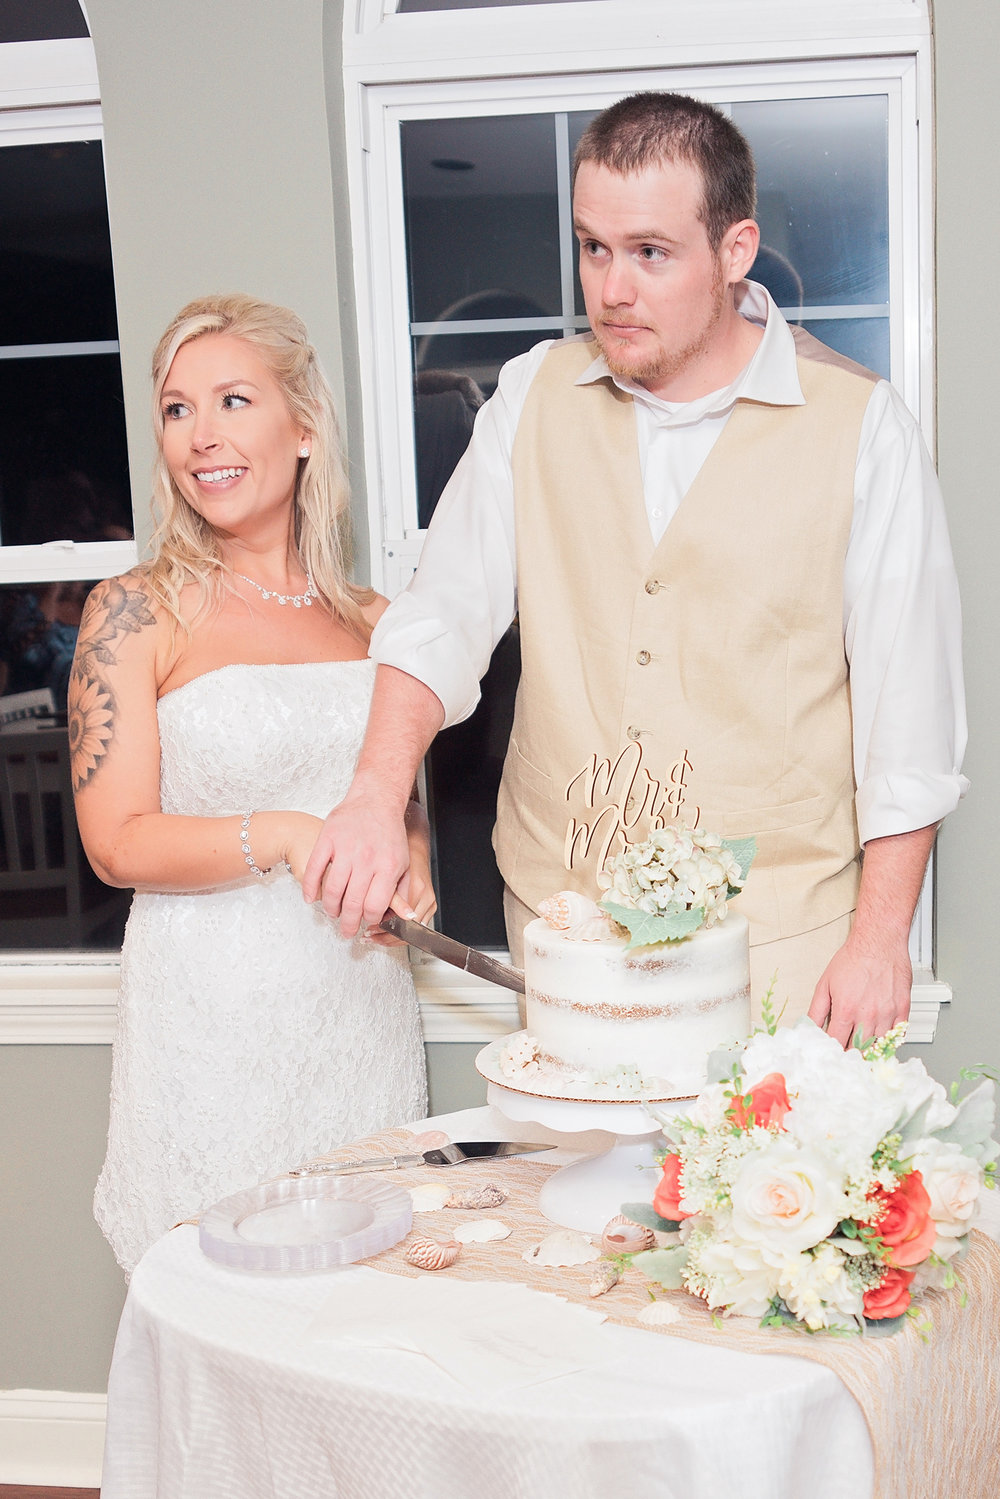 Cake_and_party (10).jpg